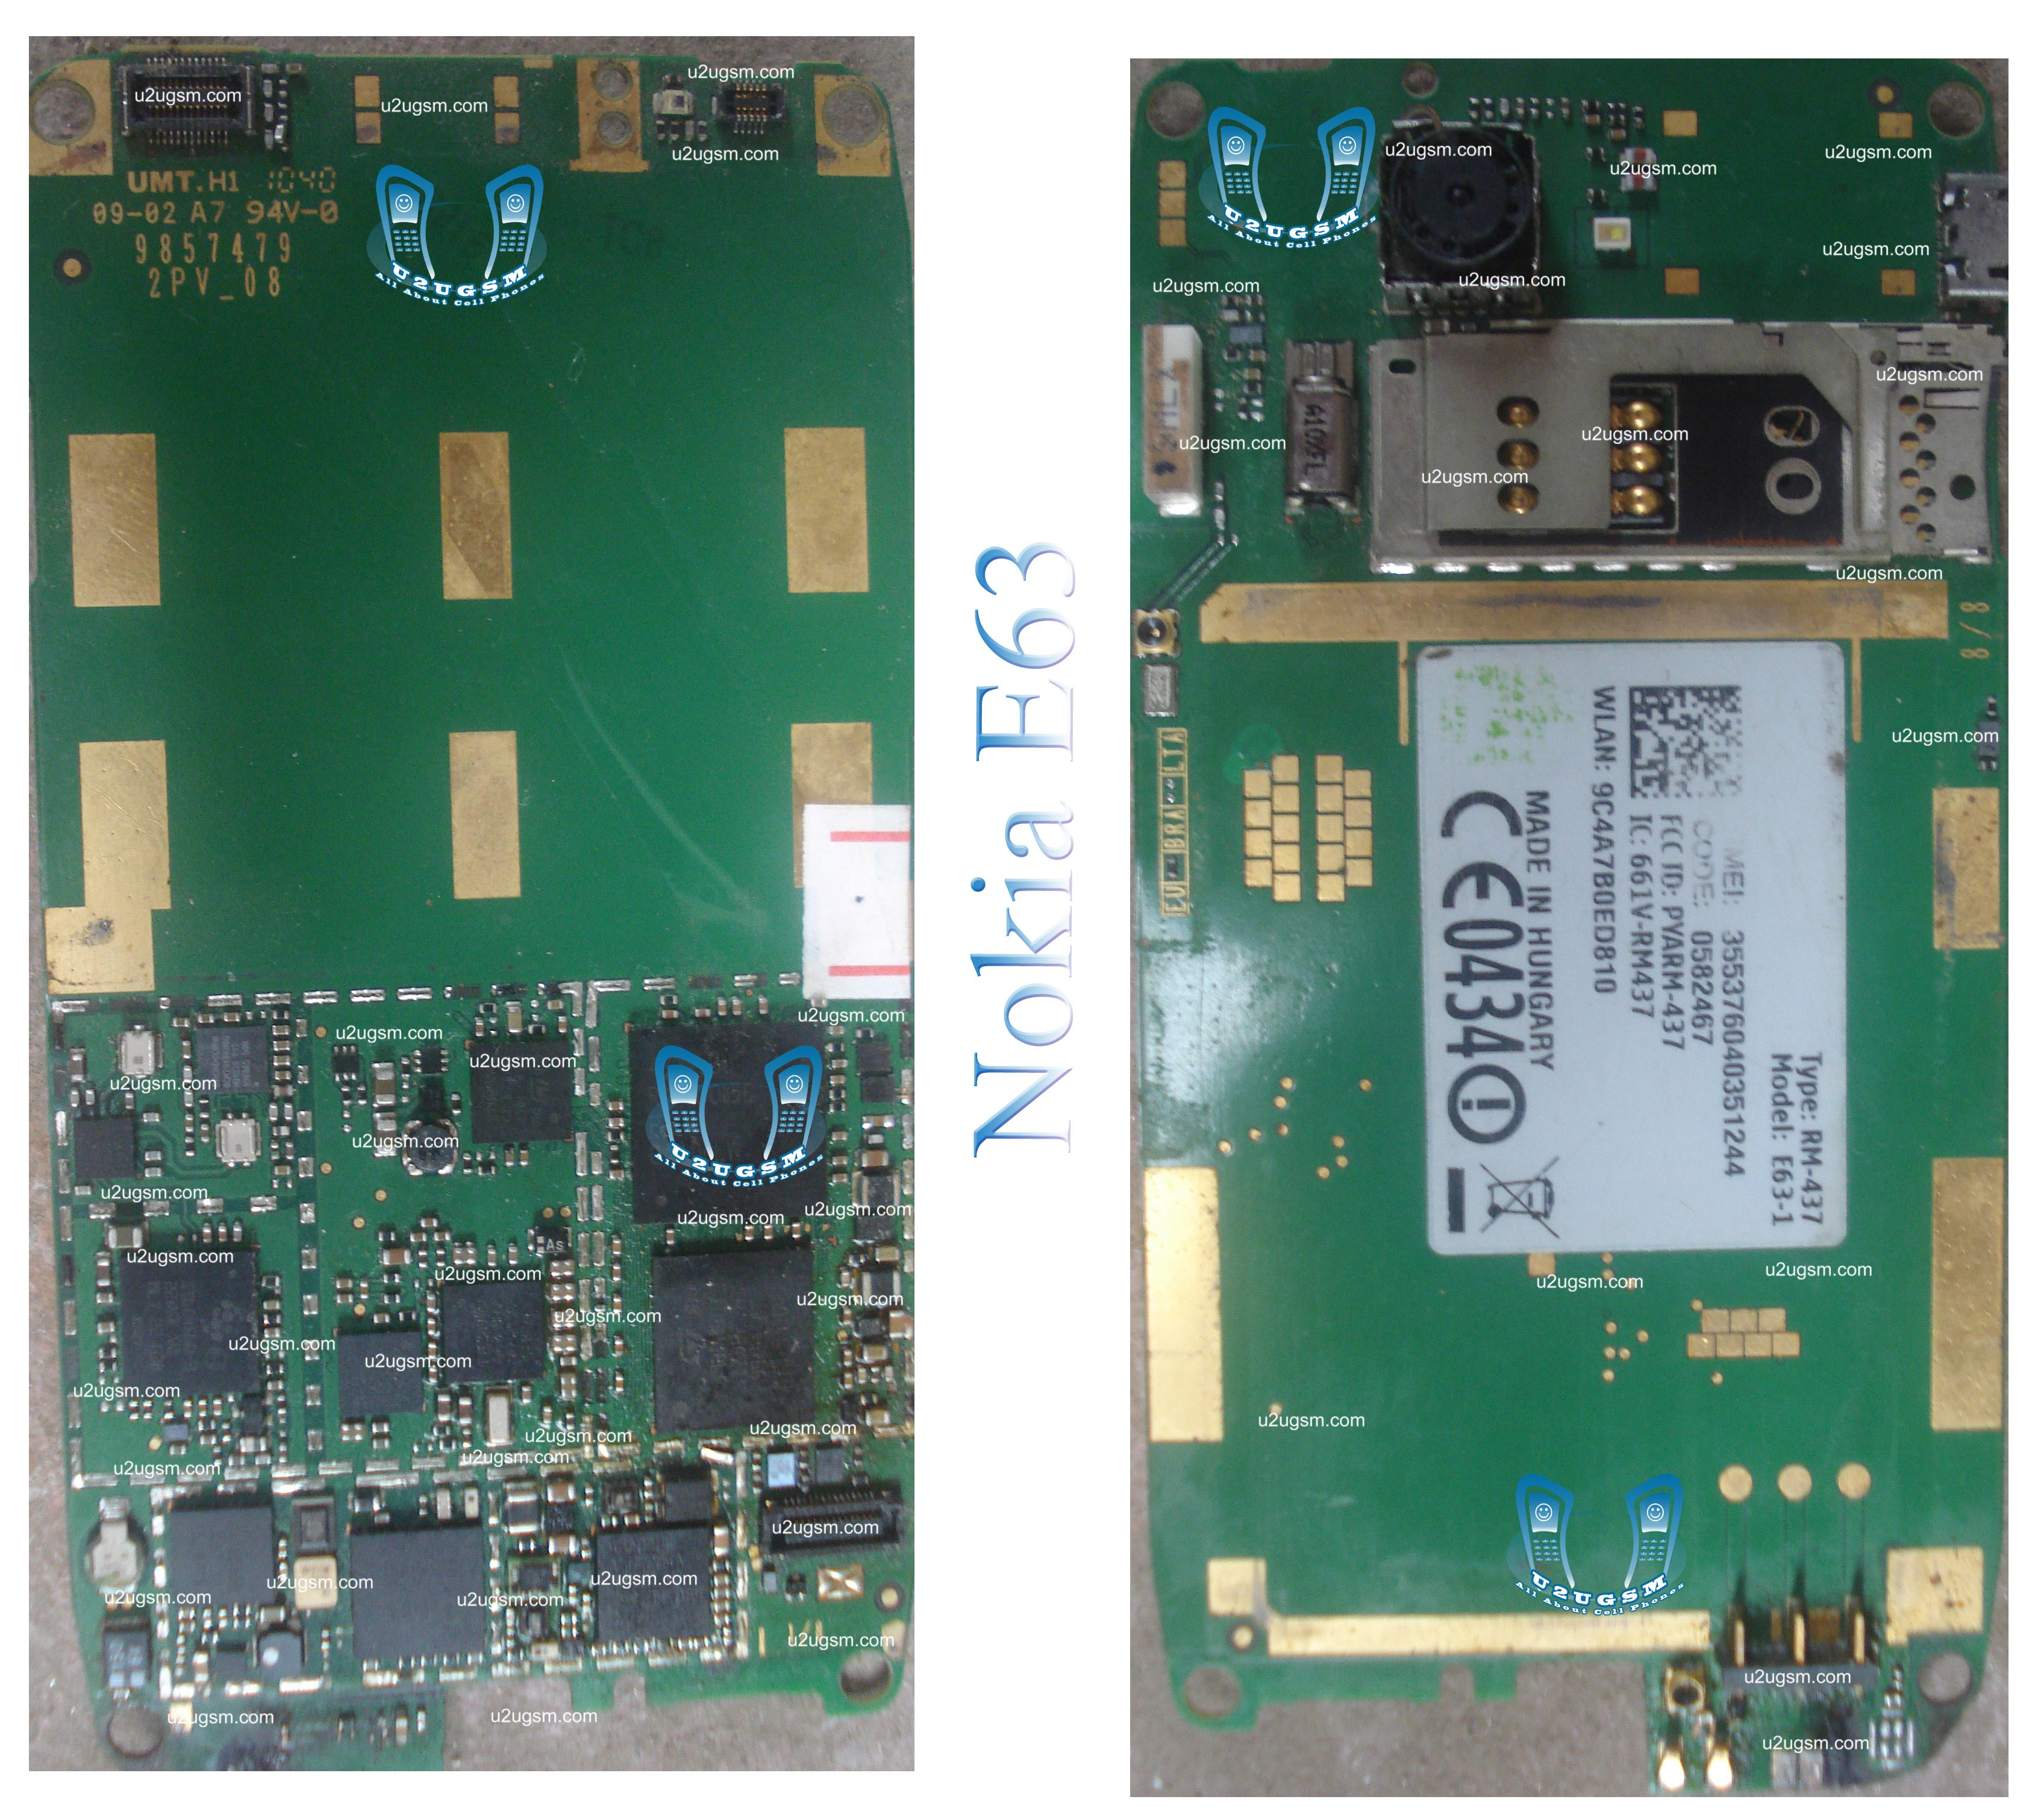 Nokia E63 Full PCB Diagram Mother Board Layoutt